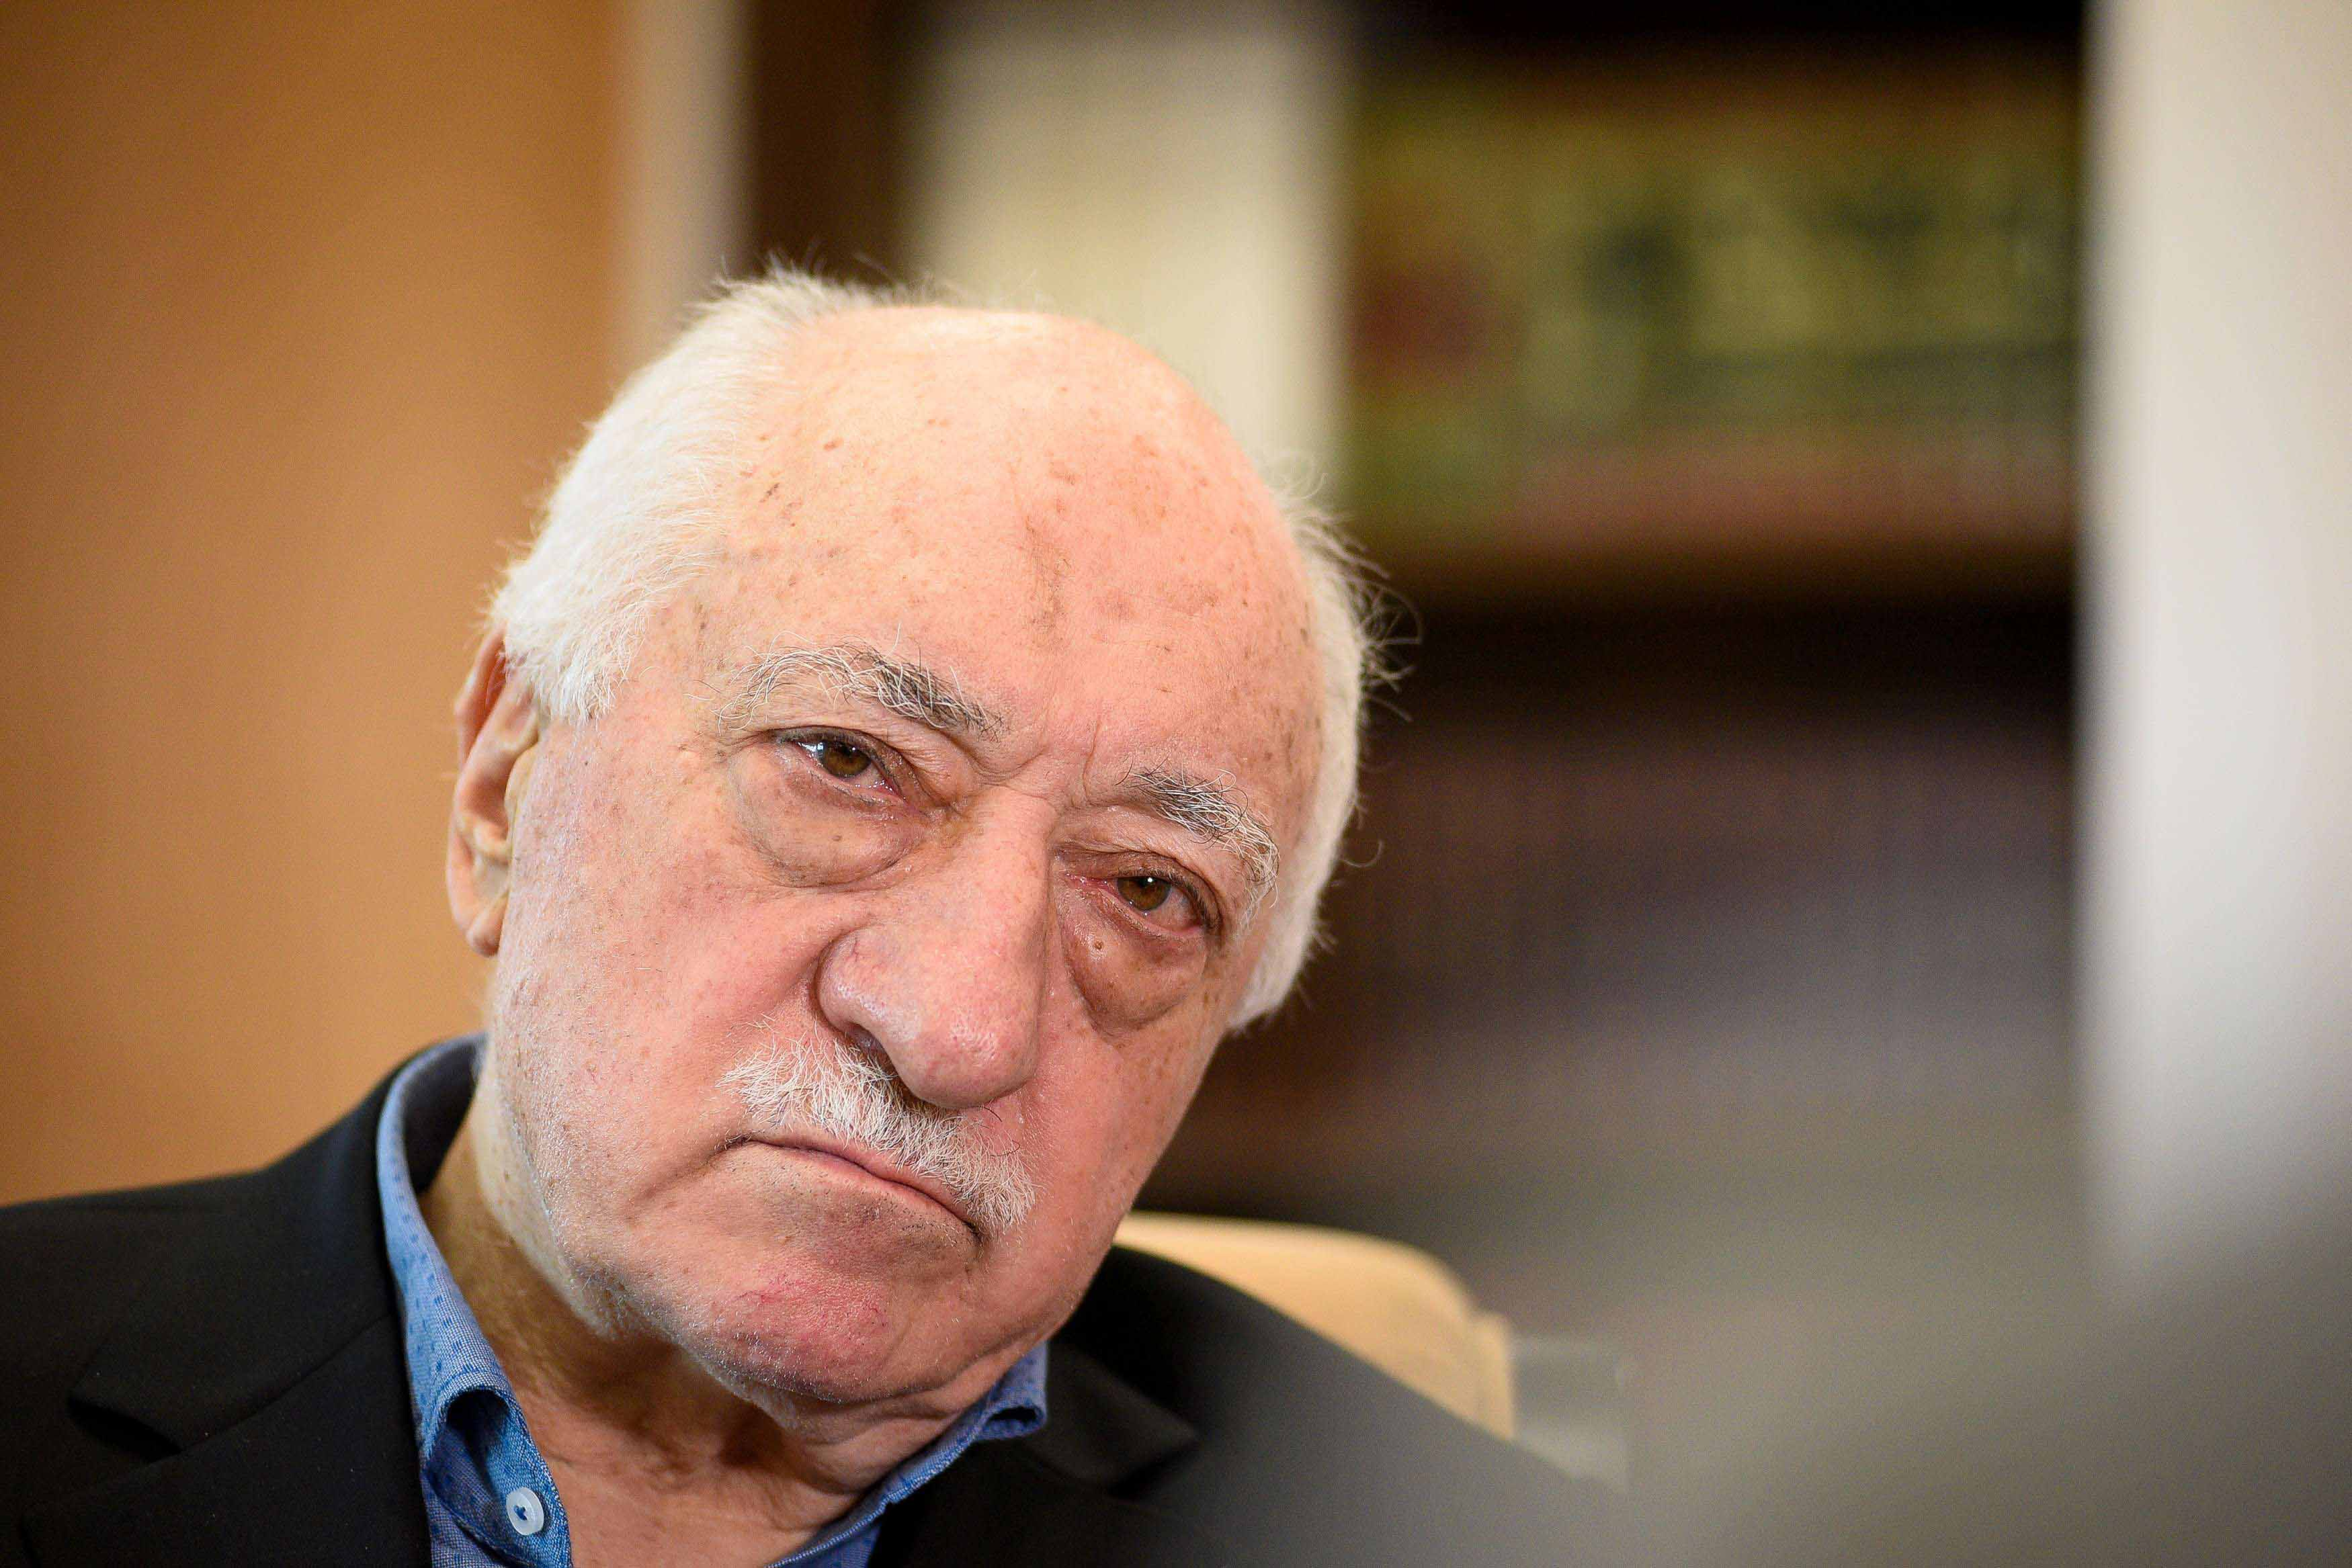 Ankara accuses Gulen of ordering the attempted overthrow of President Recep Tayyip Erdogan on July 15, 2016 but he strongly denies the claims